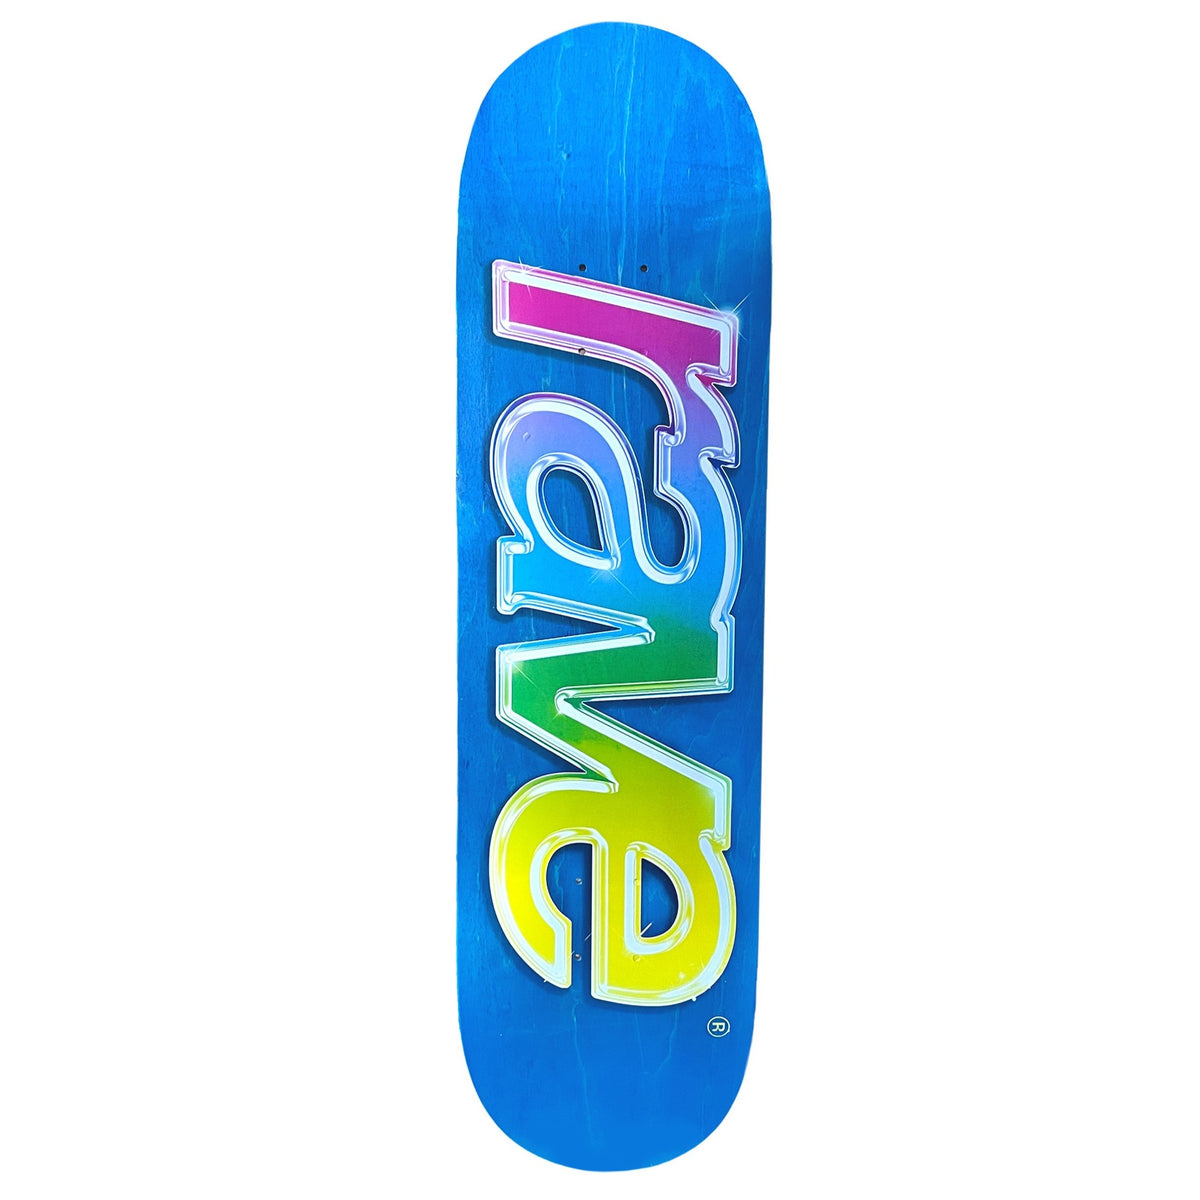 RAINBOW board - RAVE skateboards